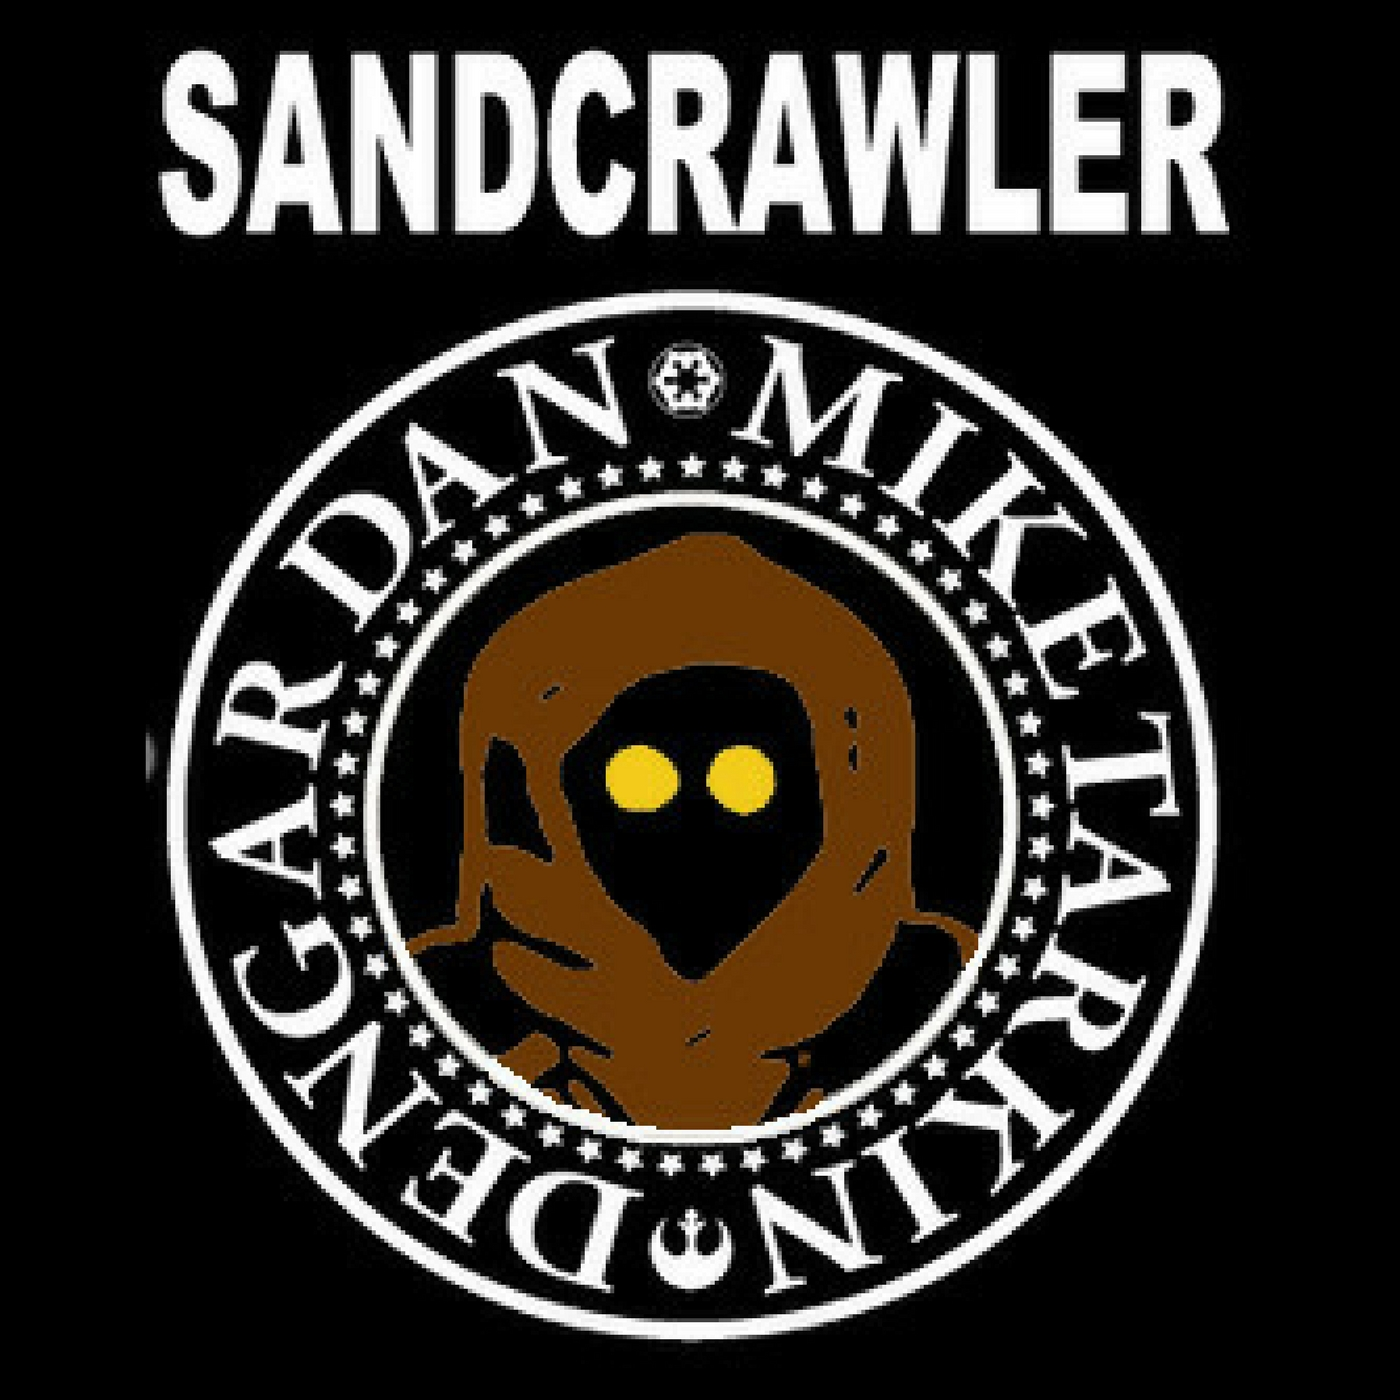 The Sandcrawler-Your Home For Action Figure Therapy